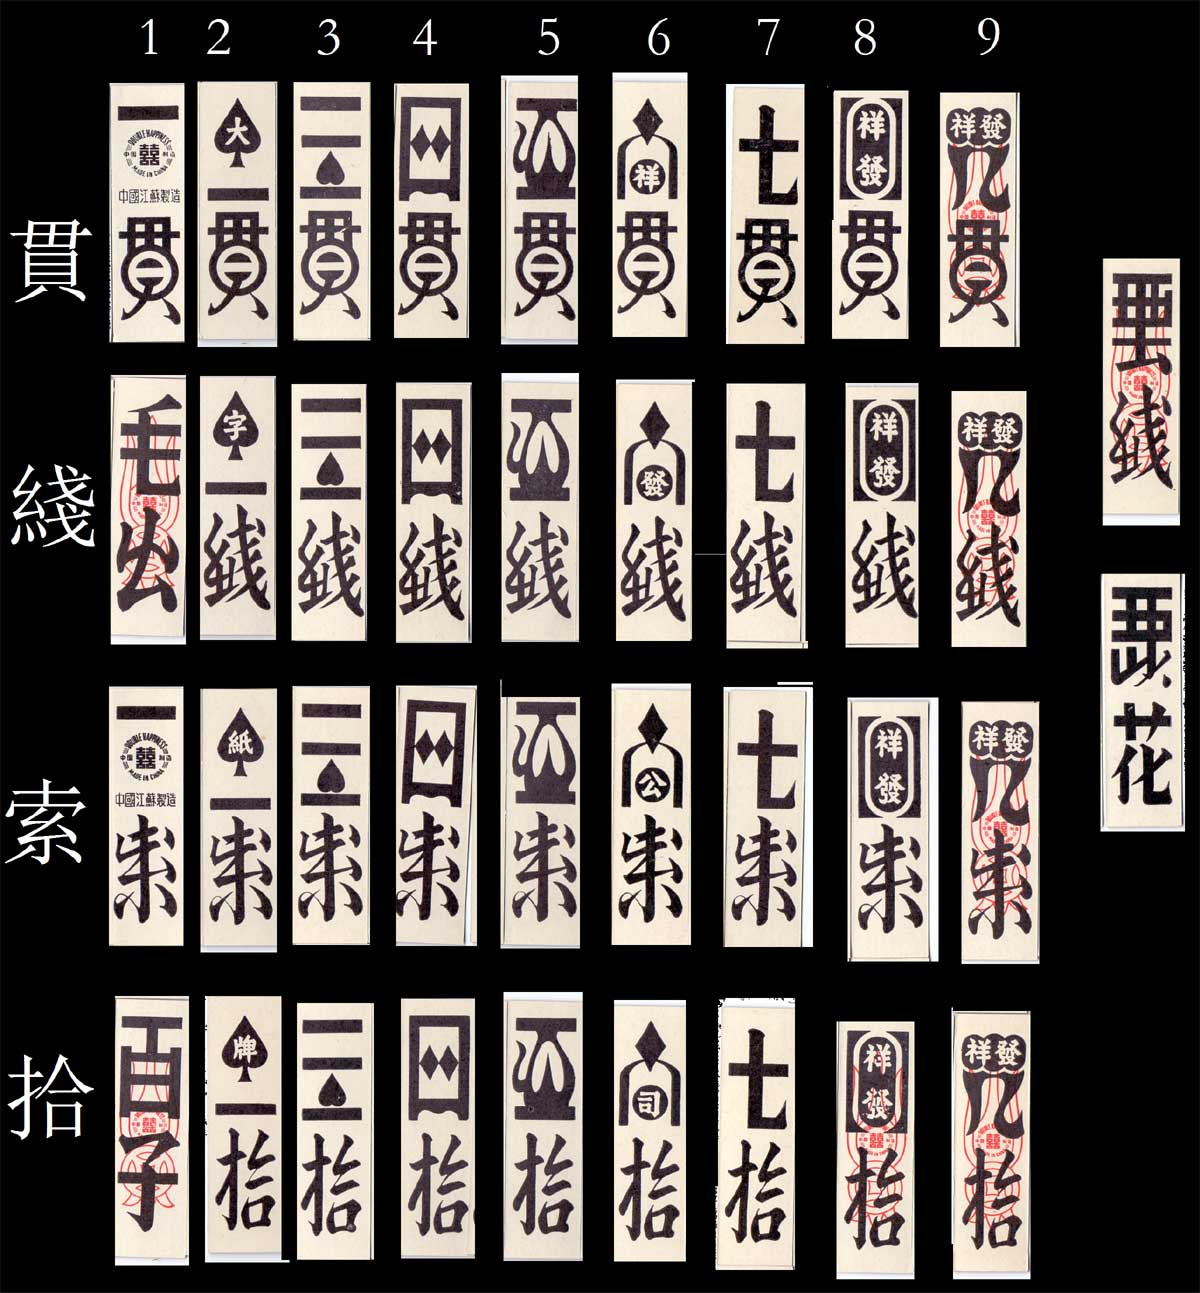 """Double Happiness"" brand Hakka [客家] playing cards used by Hakka ethnic communities"